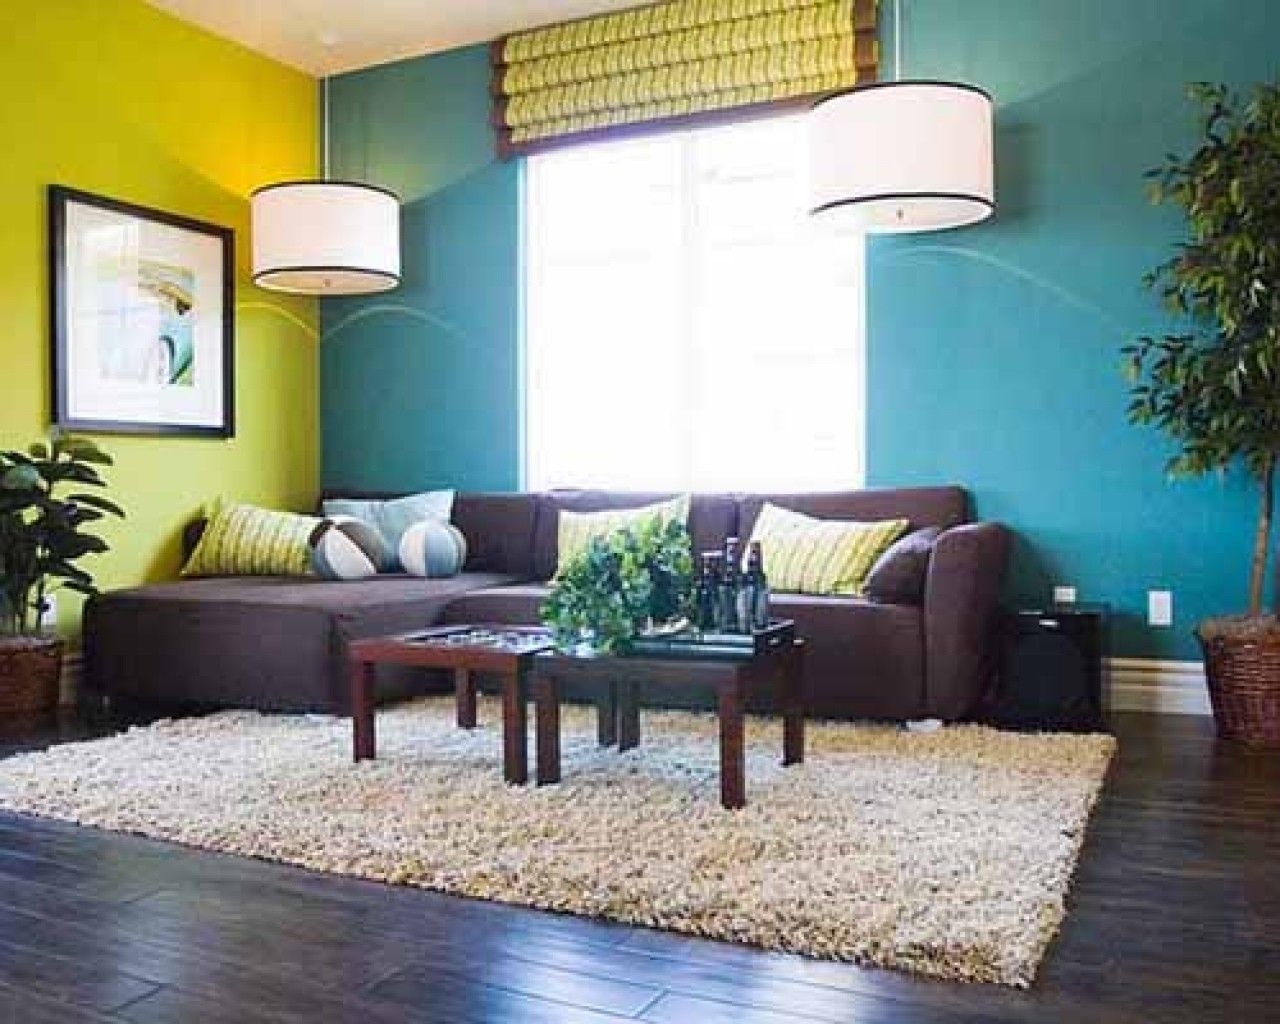 traditional interior design color schemes ideas color on interior paint color combination ideas id=42464